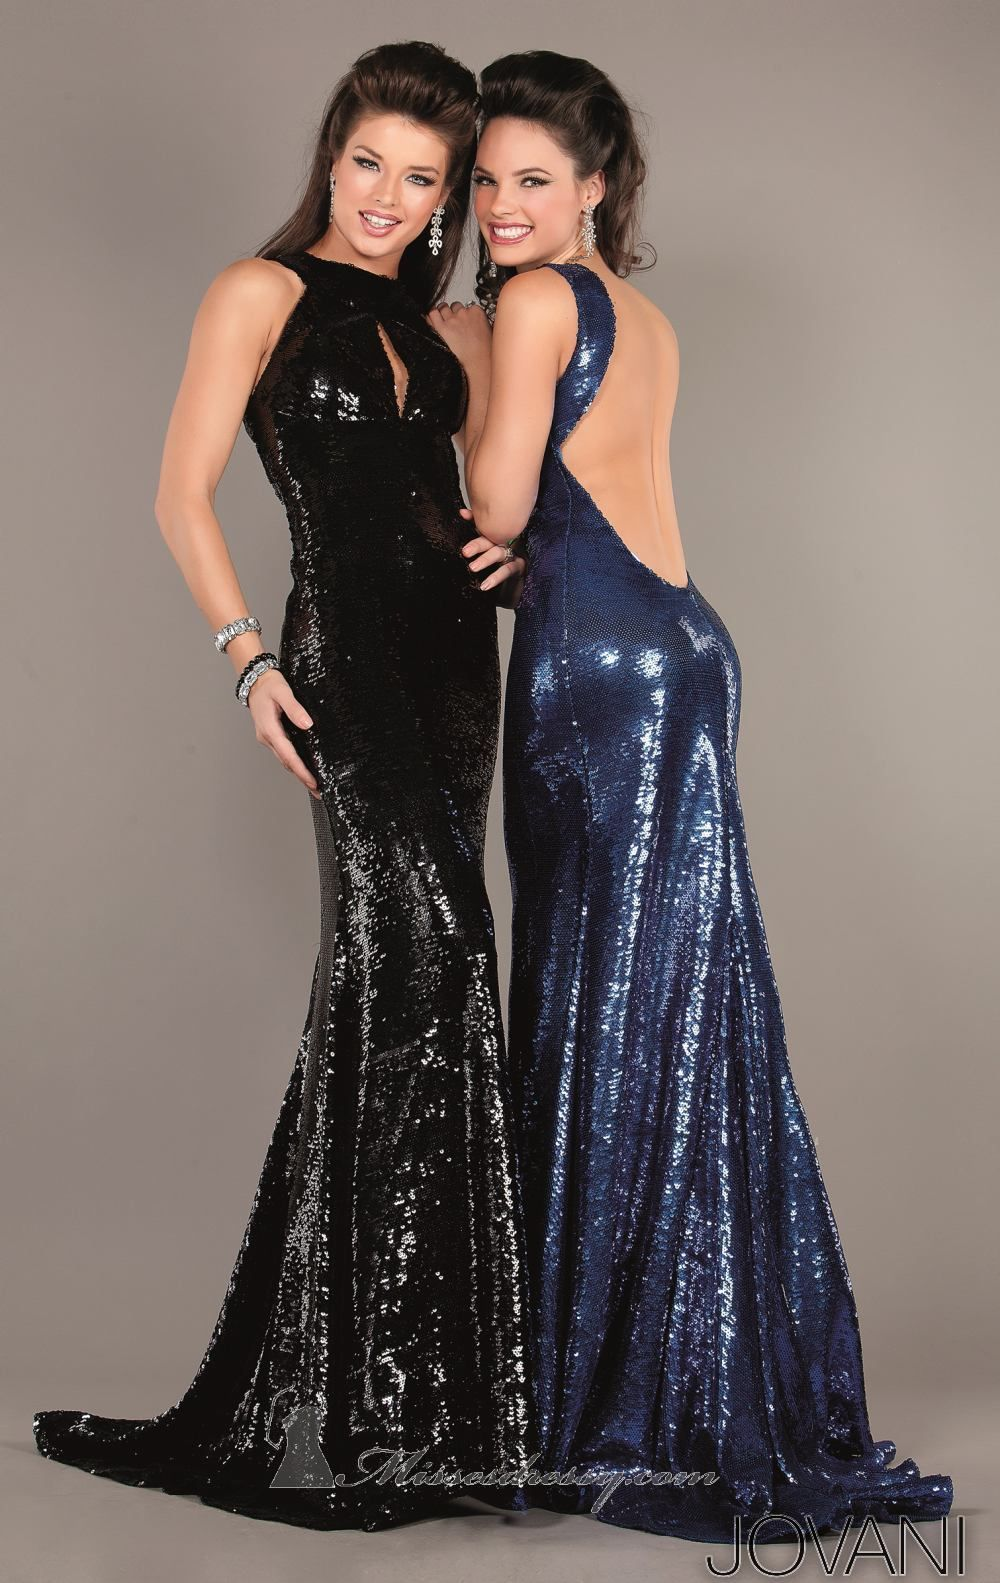 Jovani available at missesdressy sparkles and prom